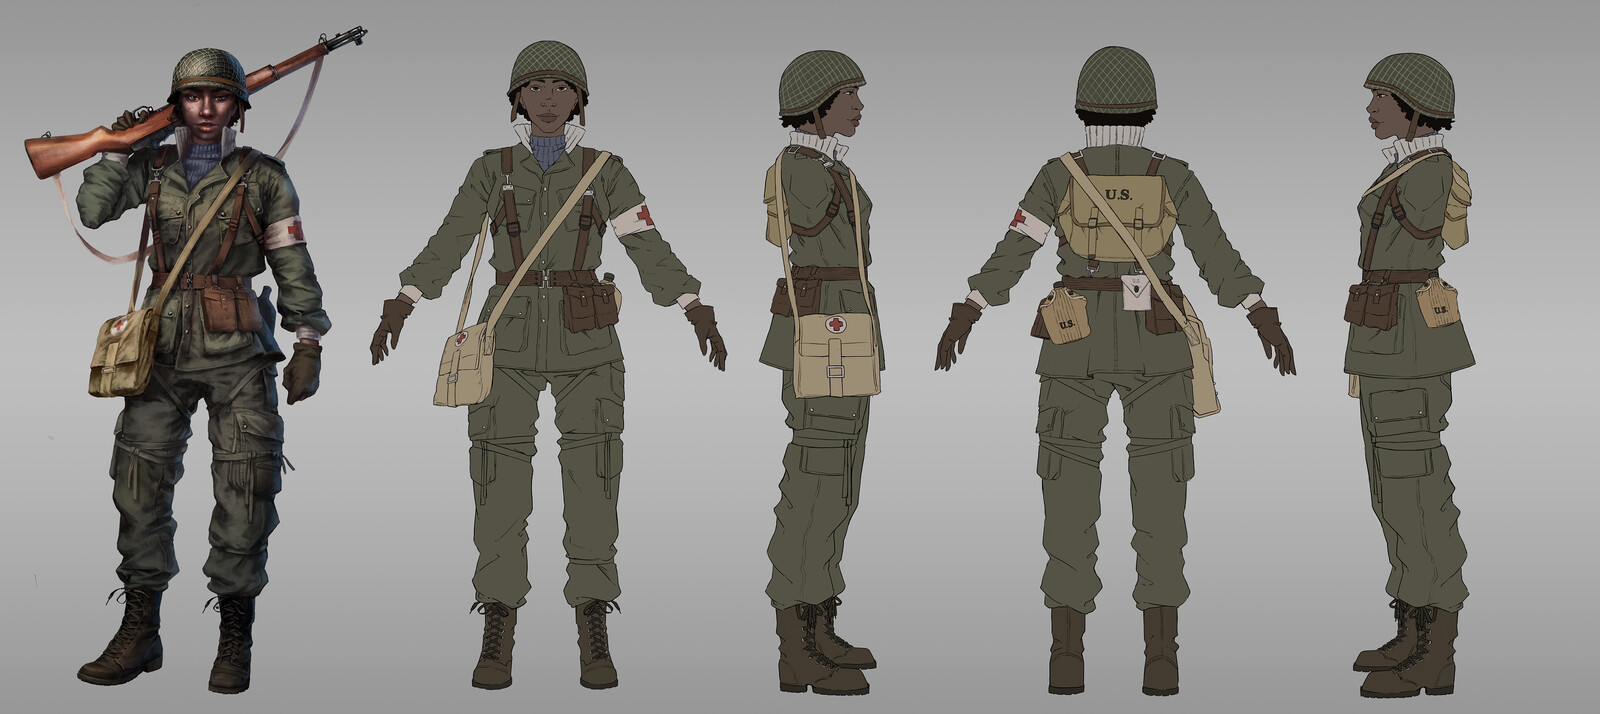 WW2 inspired character concepts - design breakdown